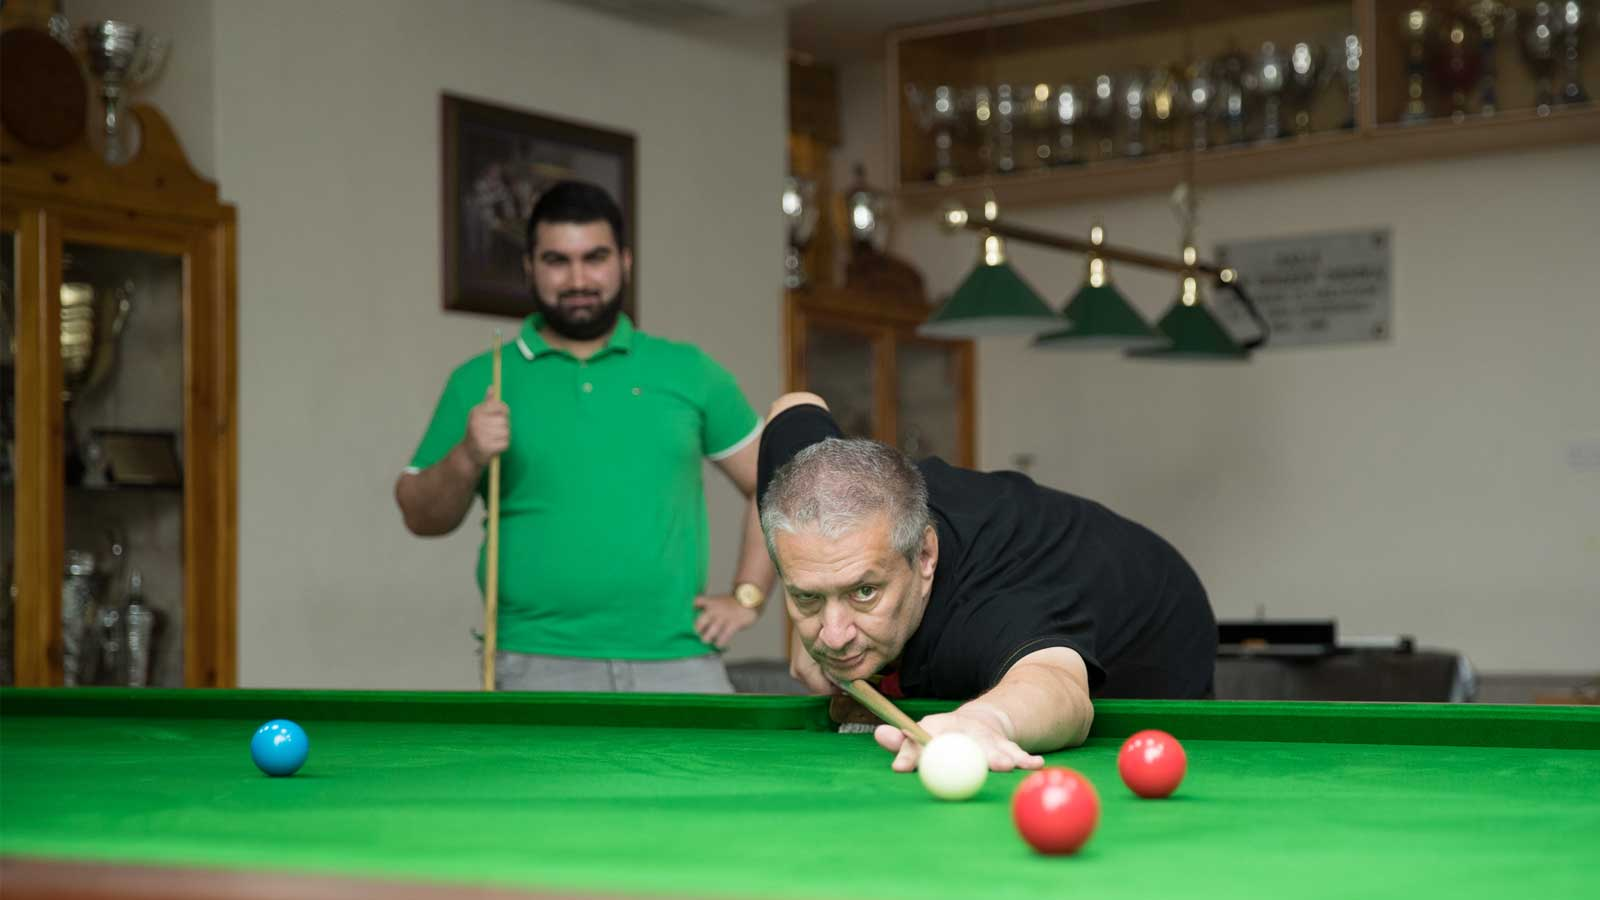 Tony Drago challenges snooker enthusiasts